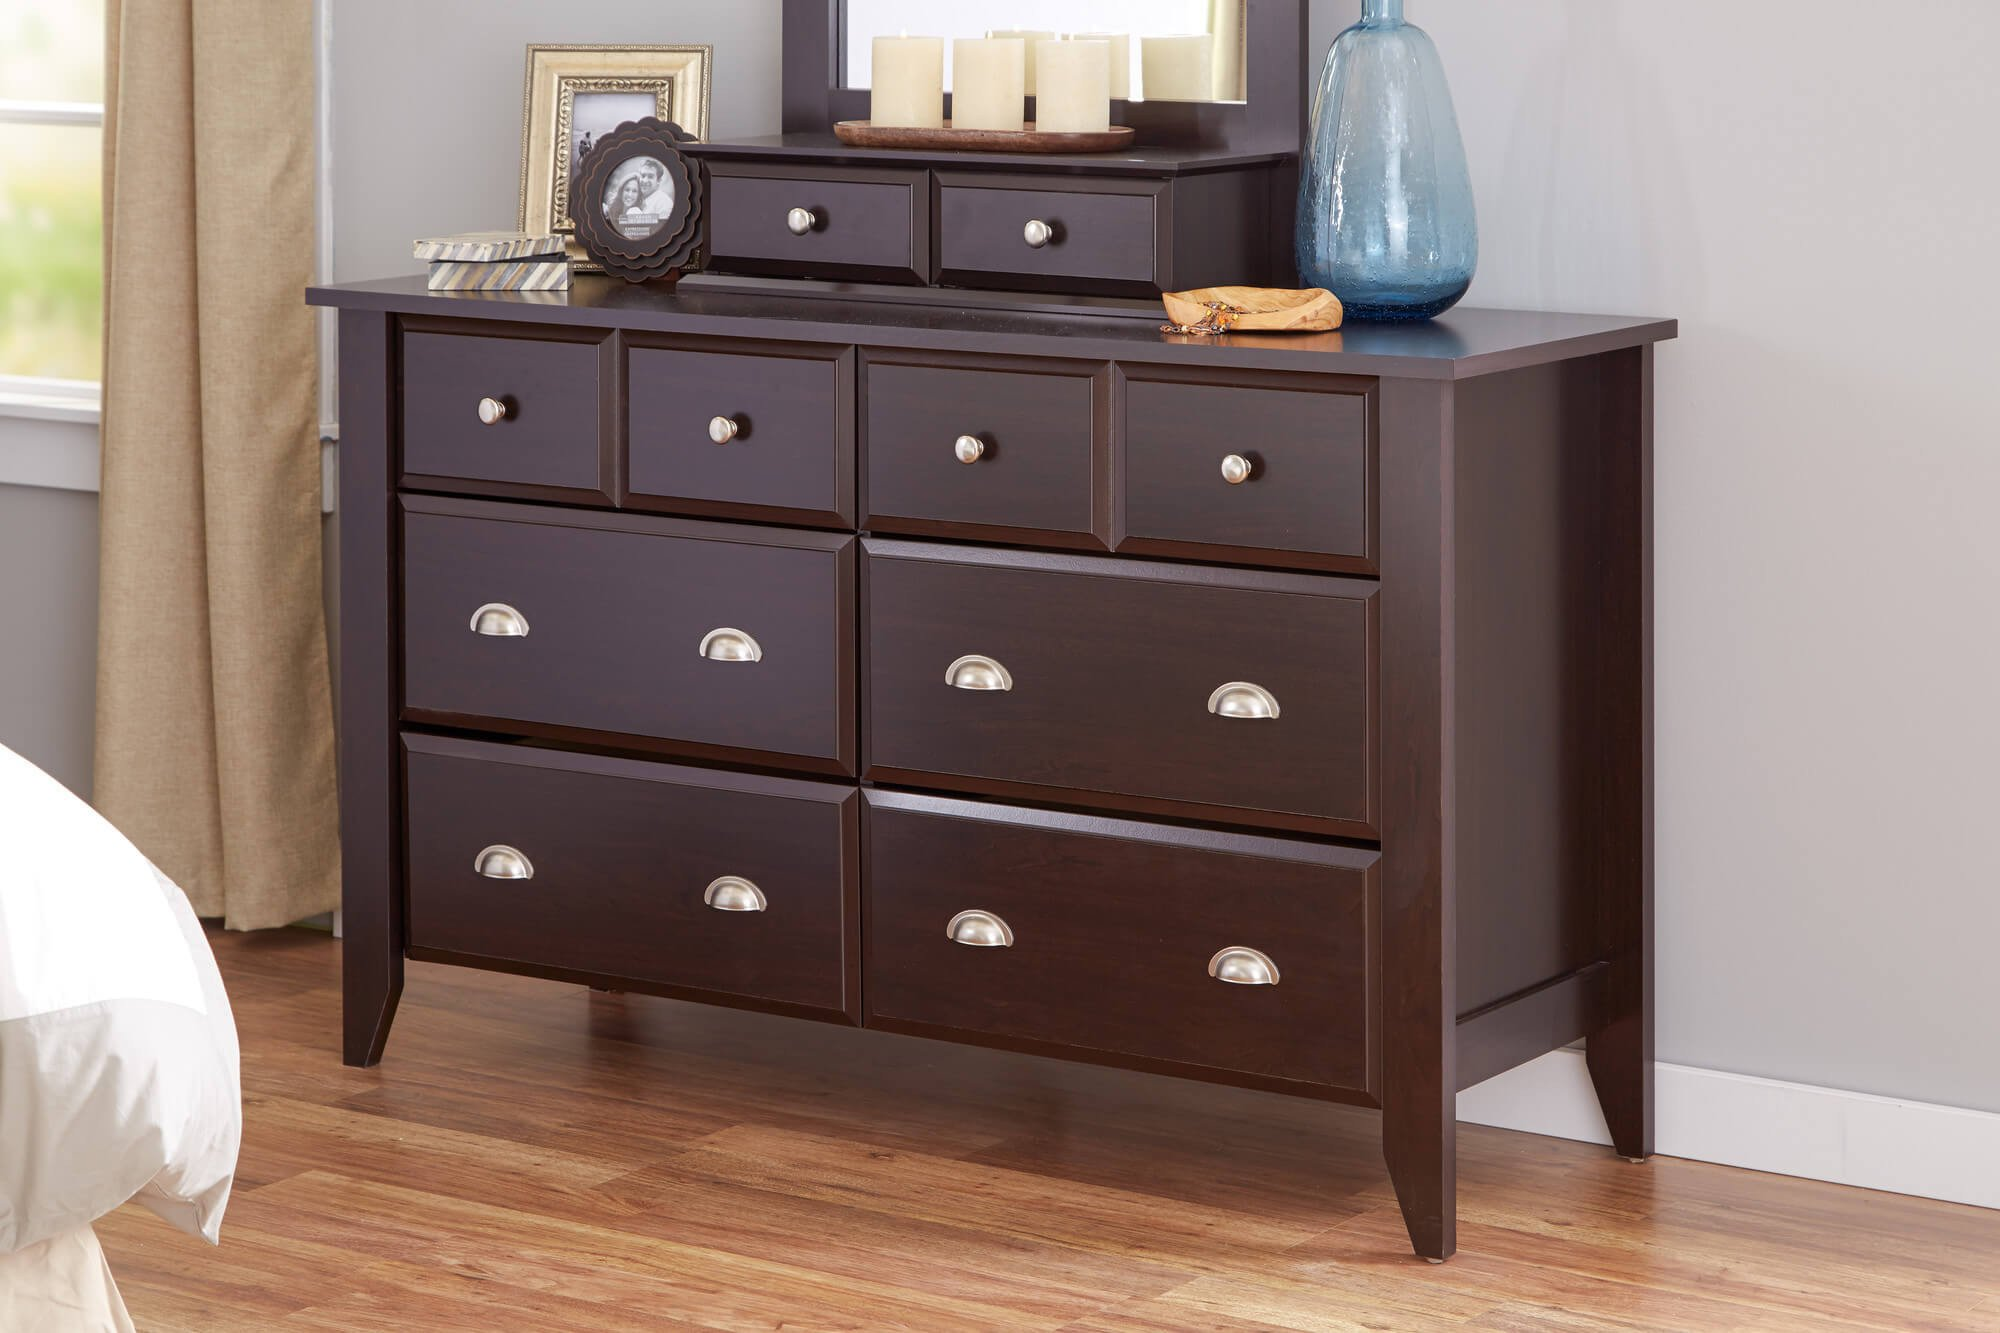 Bedroom Furniture Hardware Replacement Luxury 21 Types Of Dressers & Chest Of Drawers for Your Bedroom